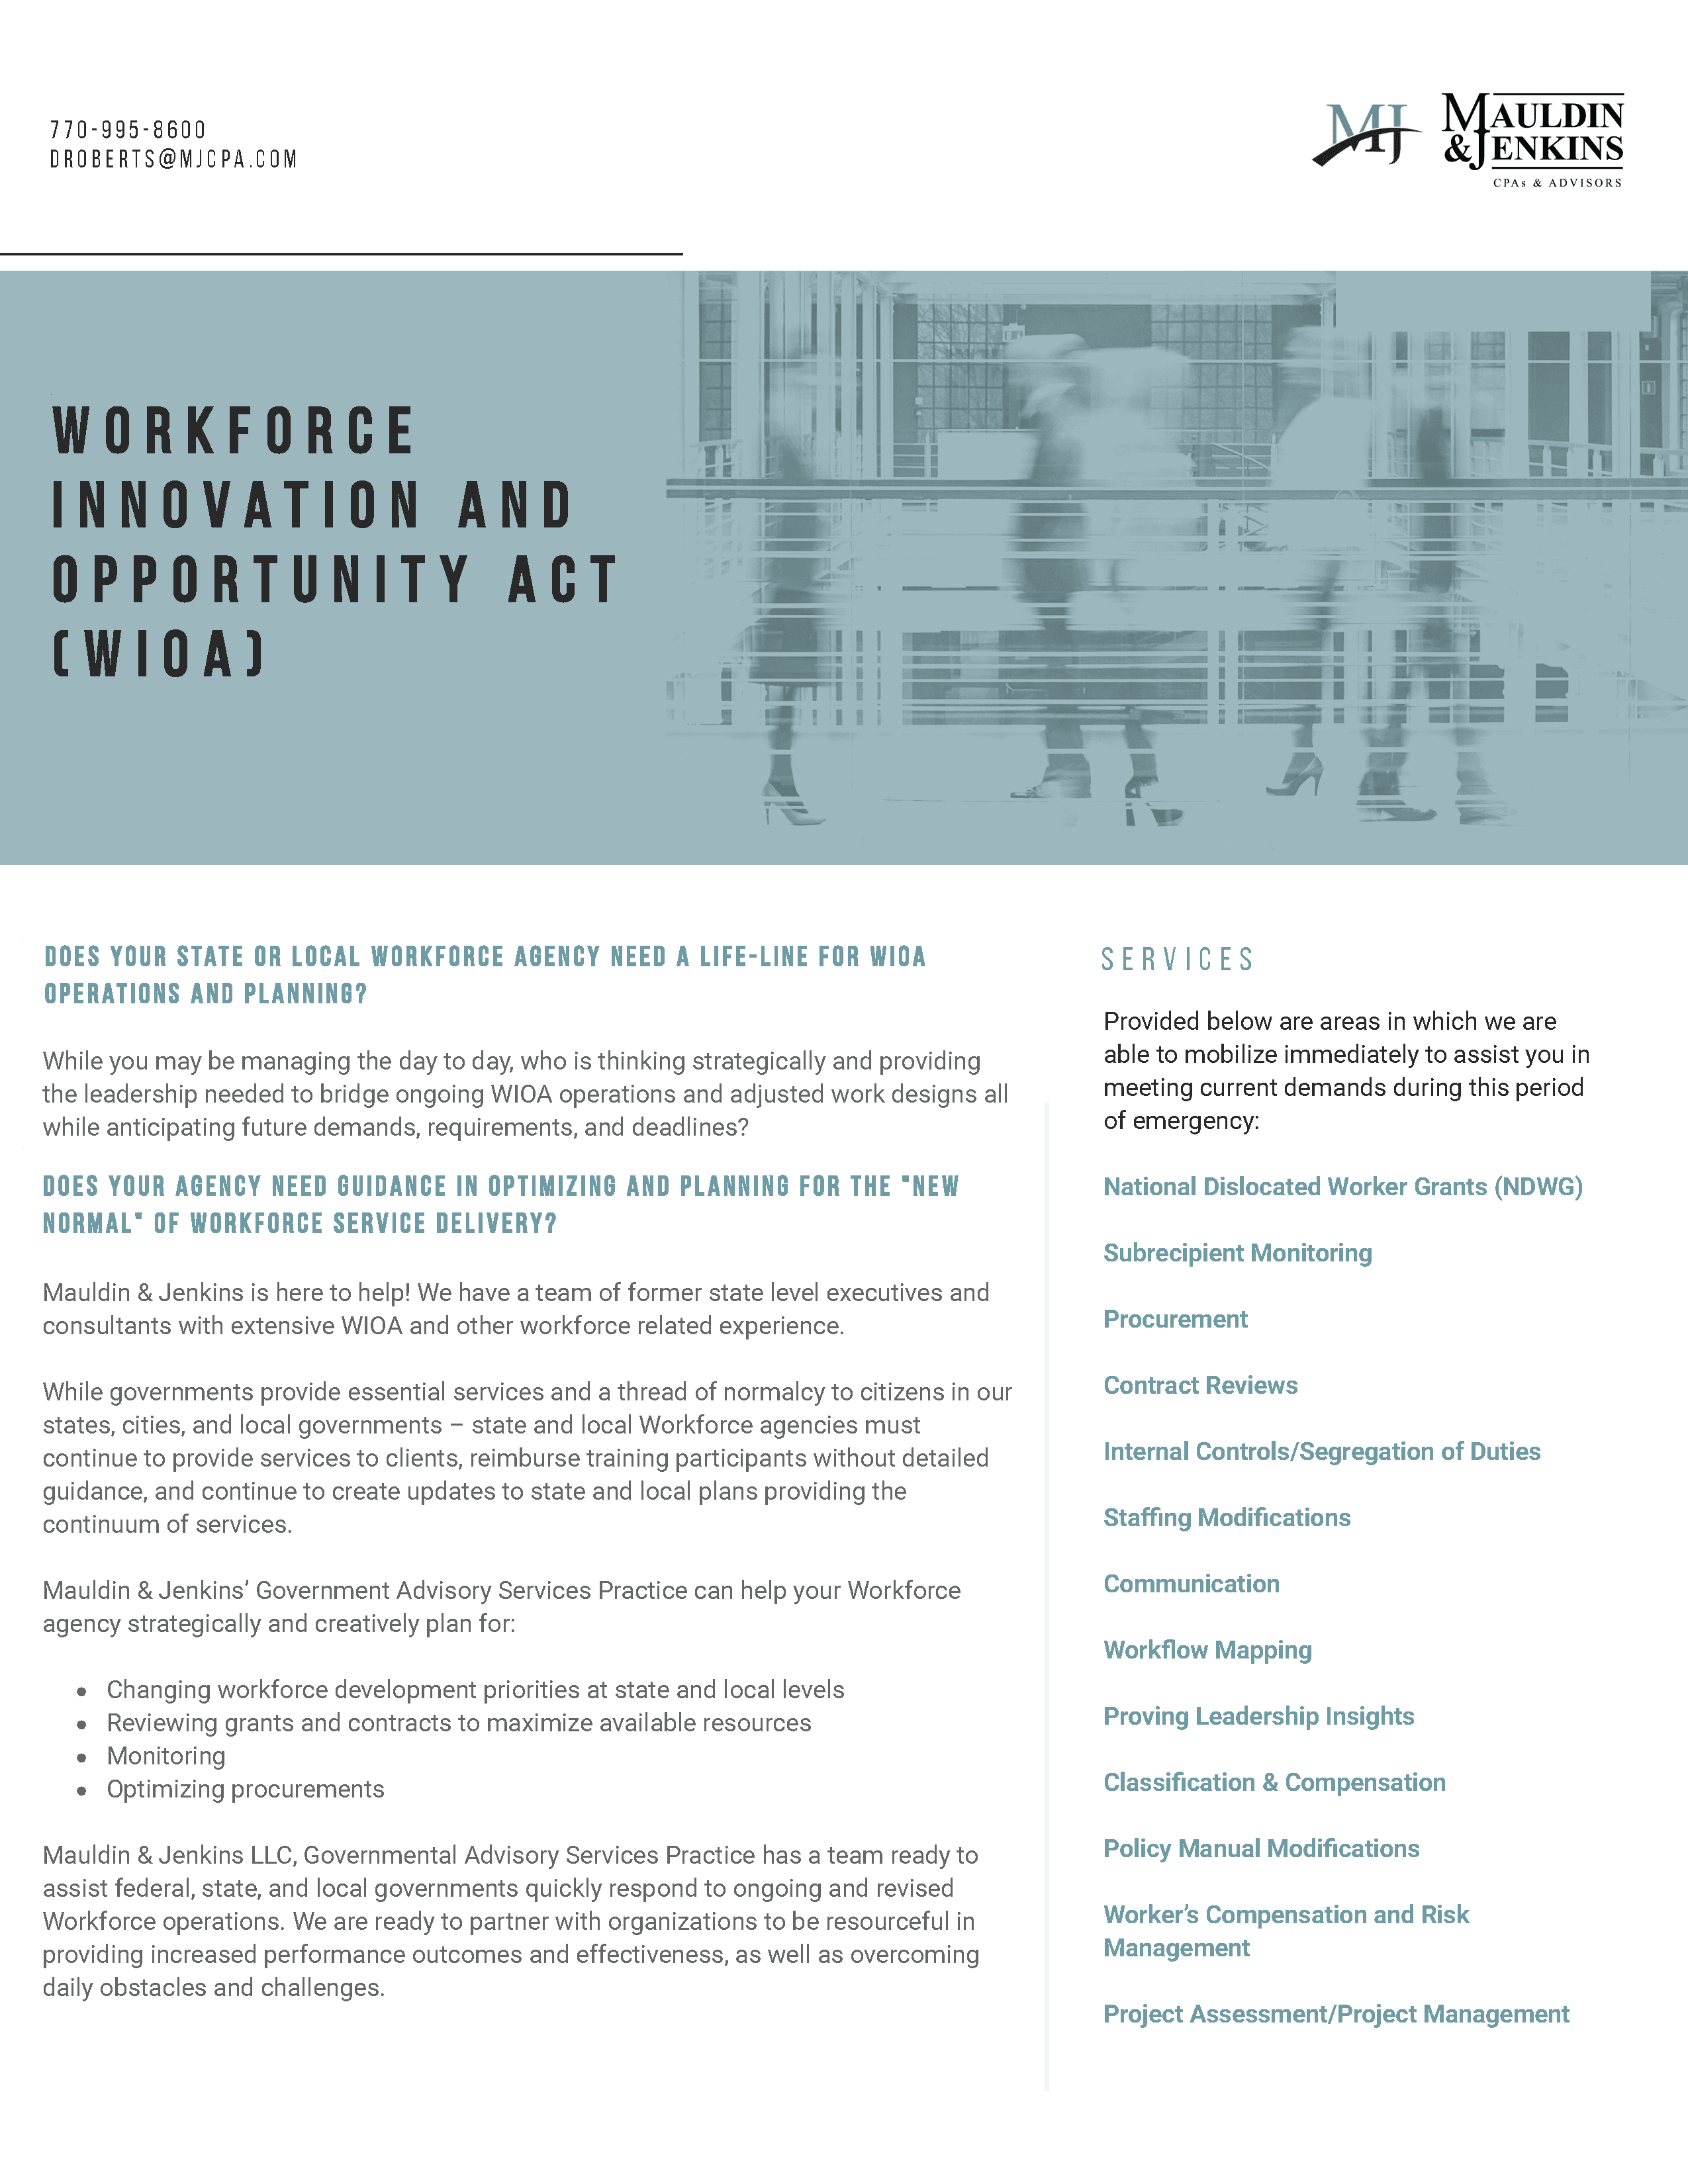 Mauldin & Jenkins workforce innovation and opportunity act wioa